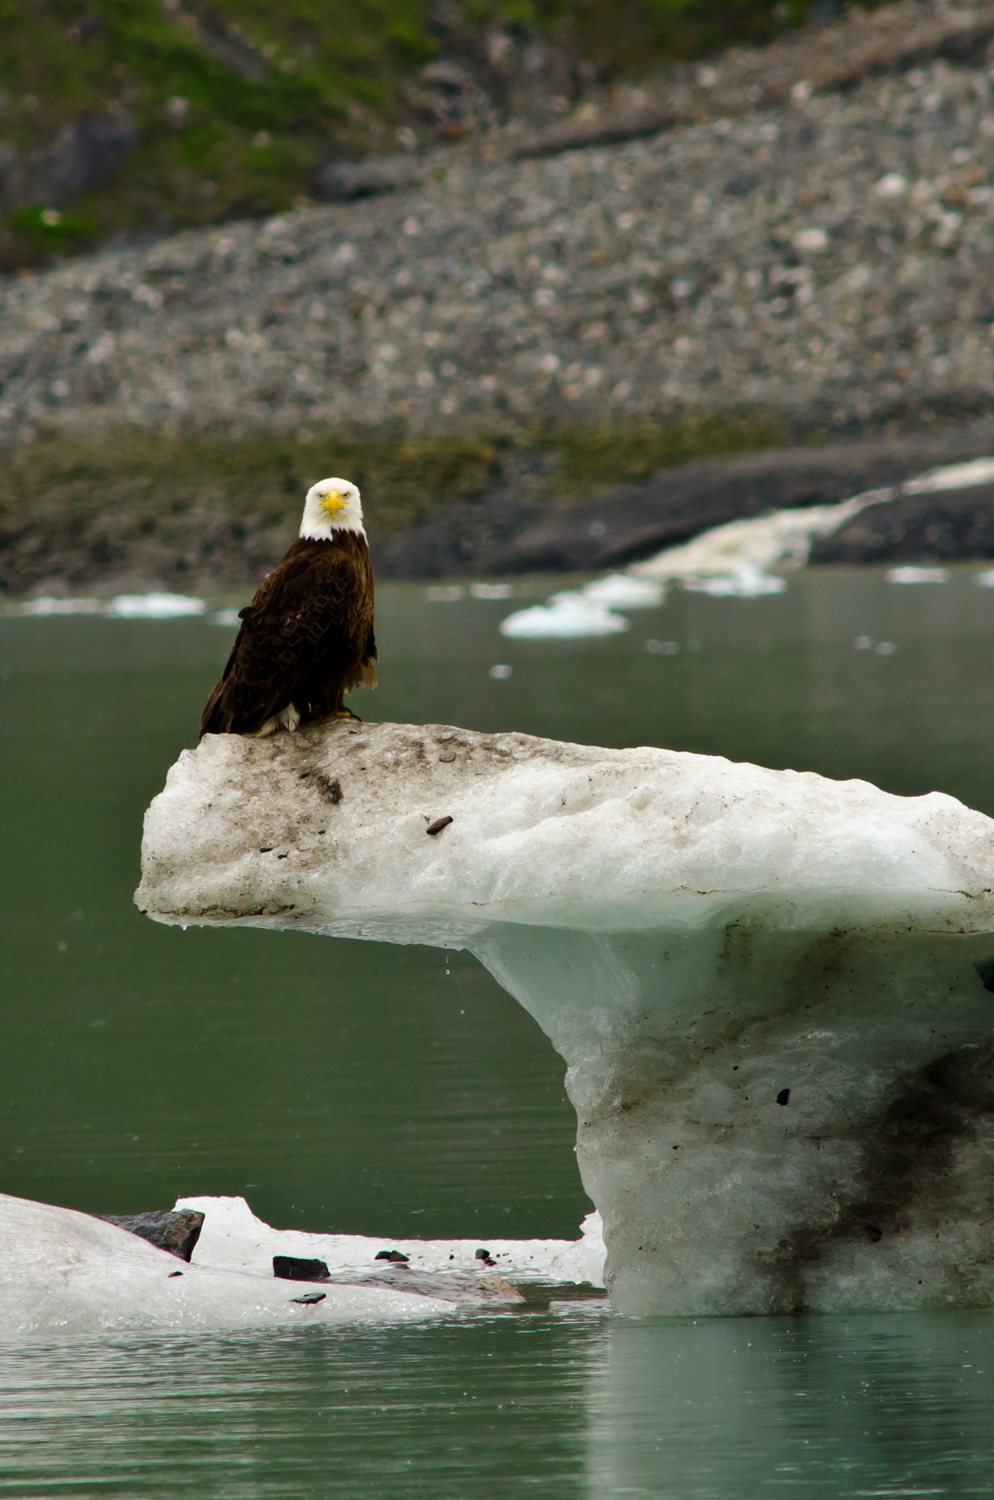 A bald eagle surveys the scene in the Johns Hopkins Inlet, Glacier Bay, Alaska.